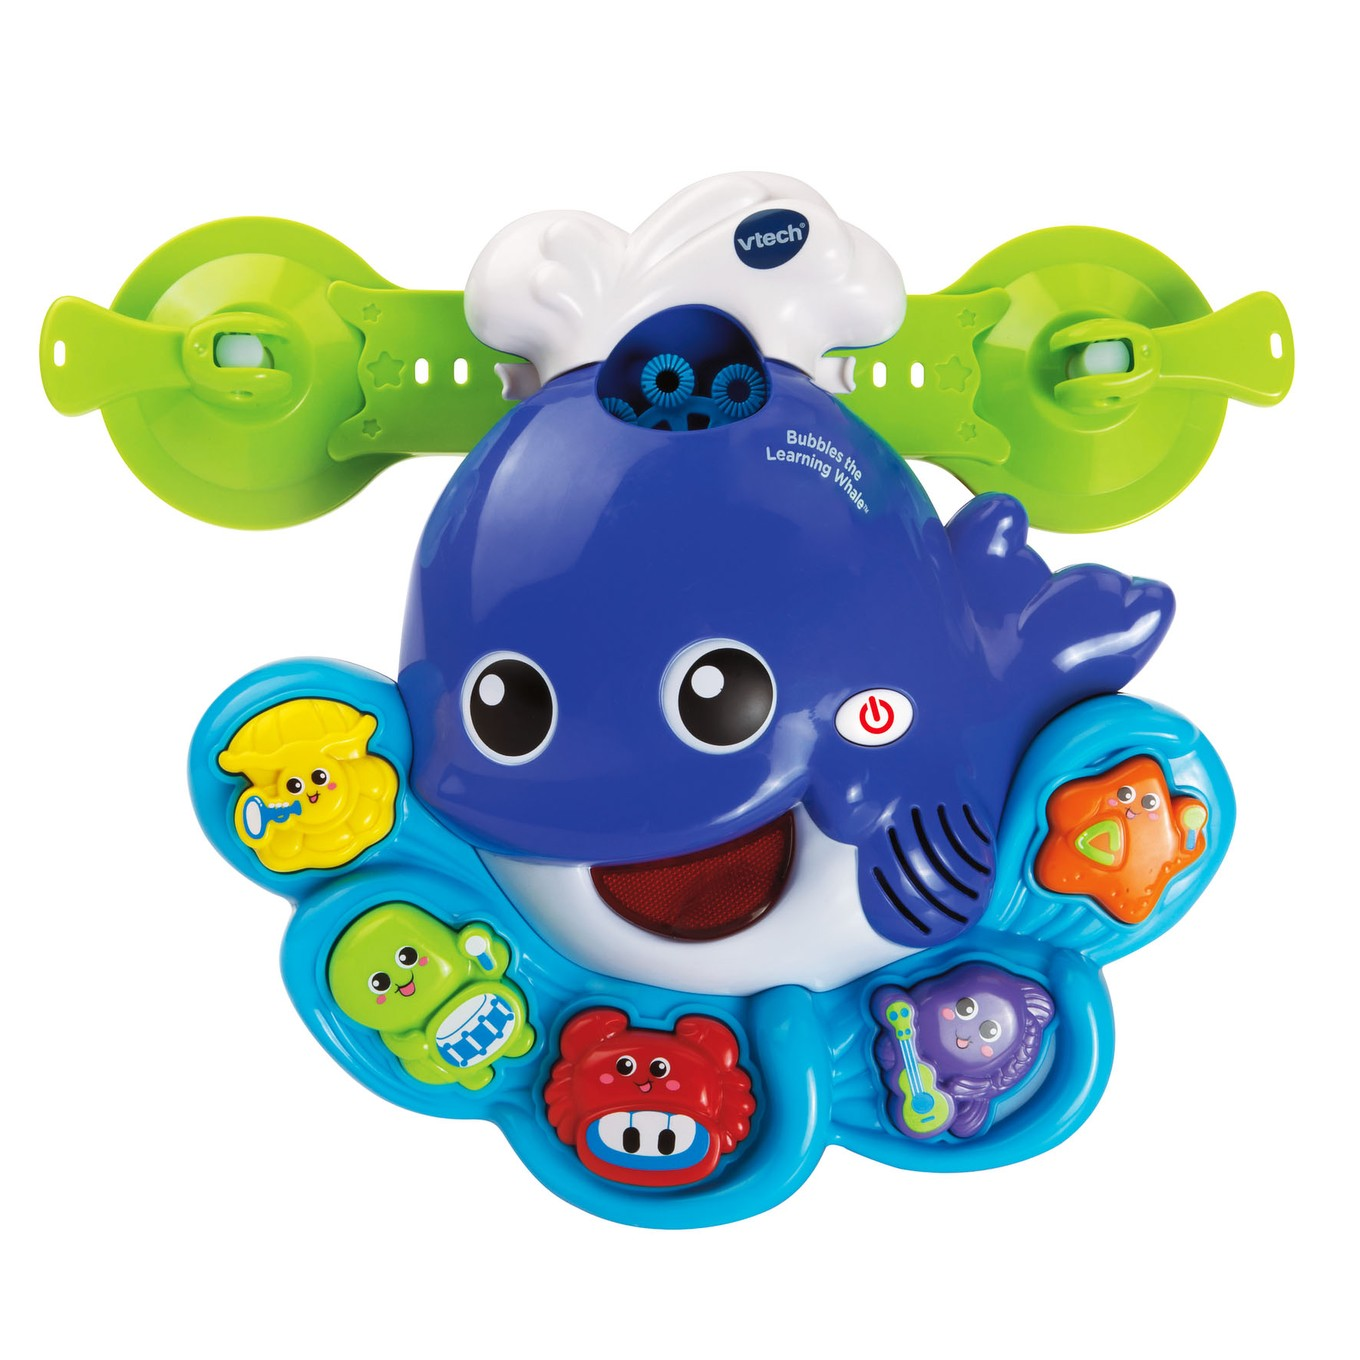 vtech play and learn activity table instructions